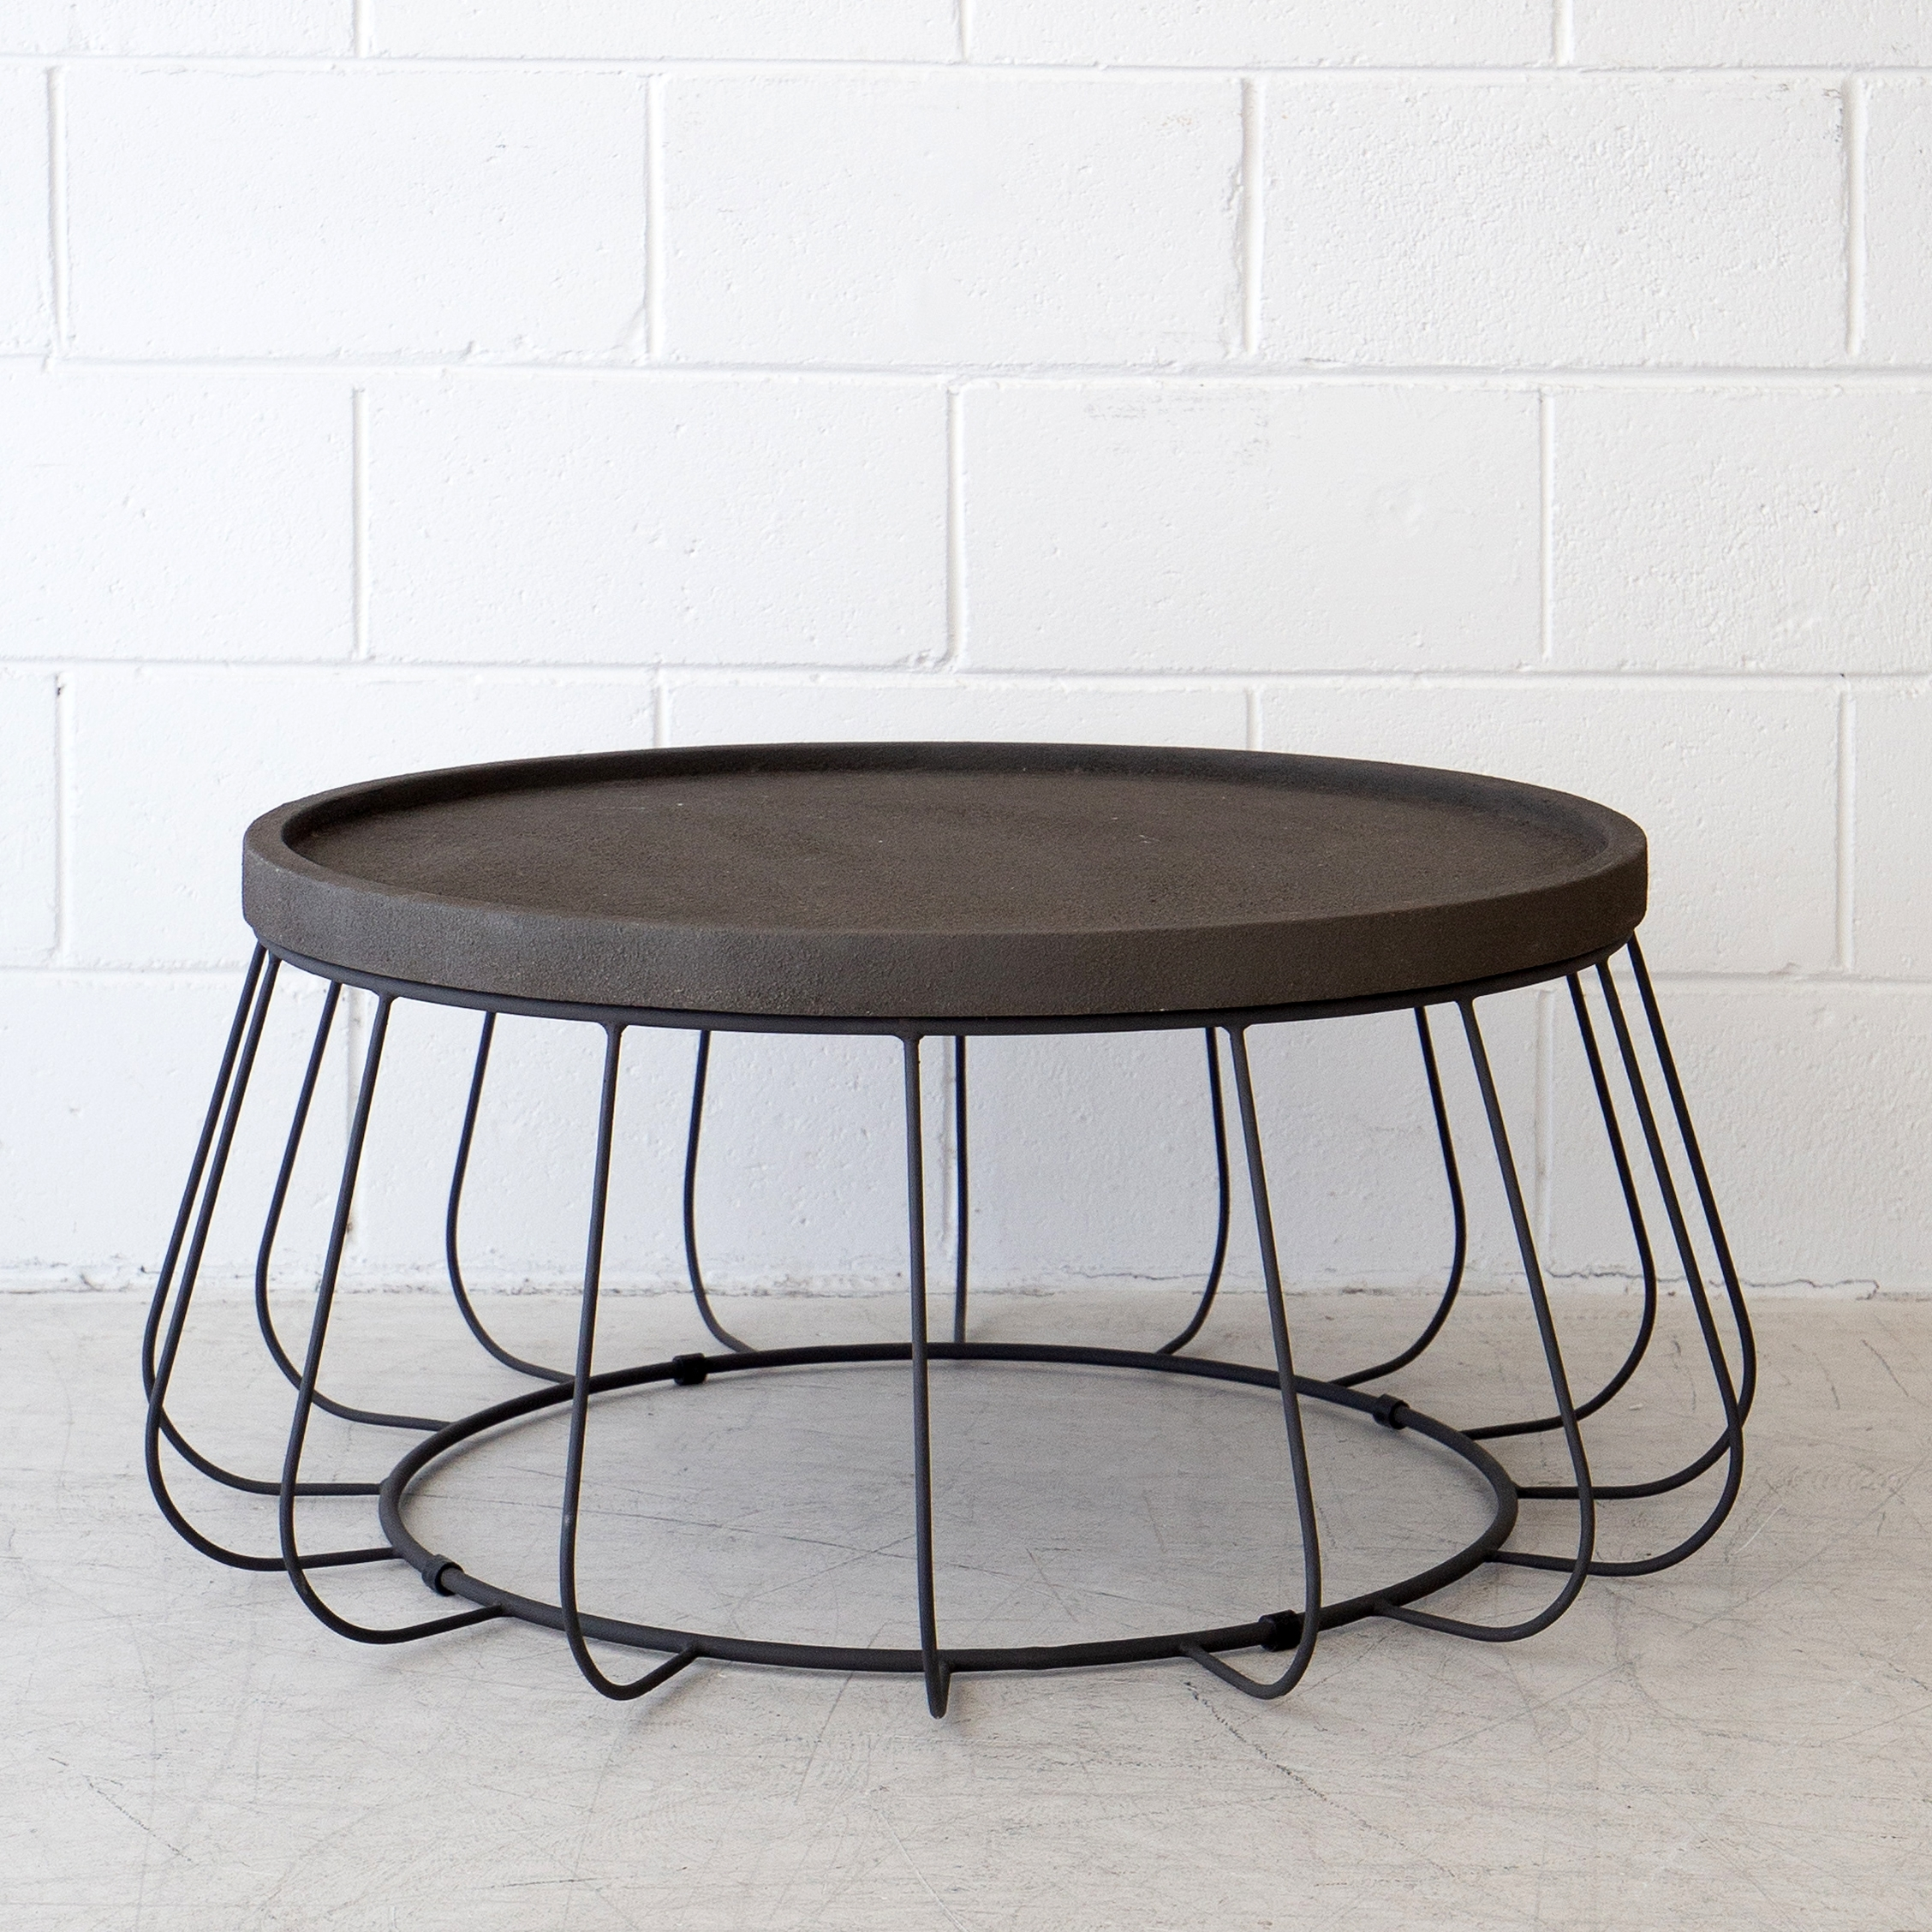 Trevi Wire Coffee Table - Black - The Beach Furniture regarding Black Wire Coffee Tables (Image 23 of 30)